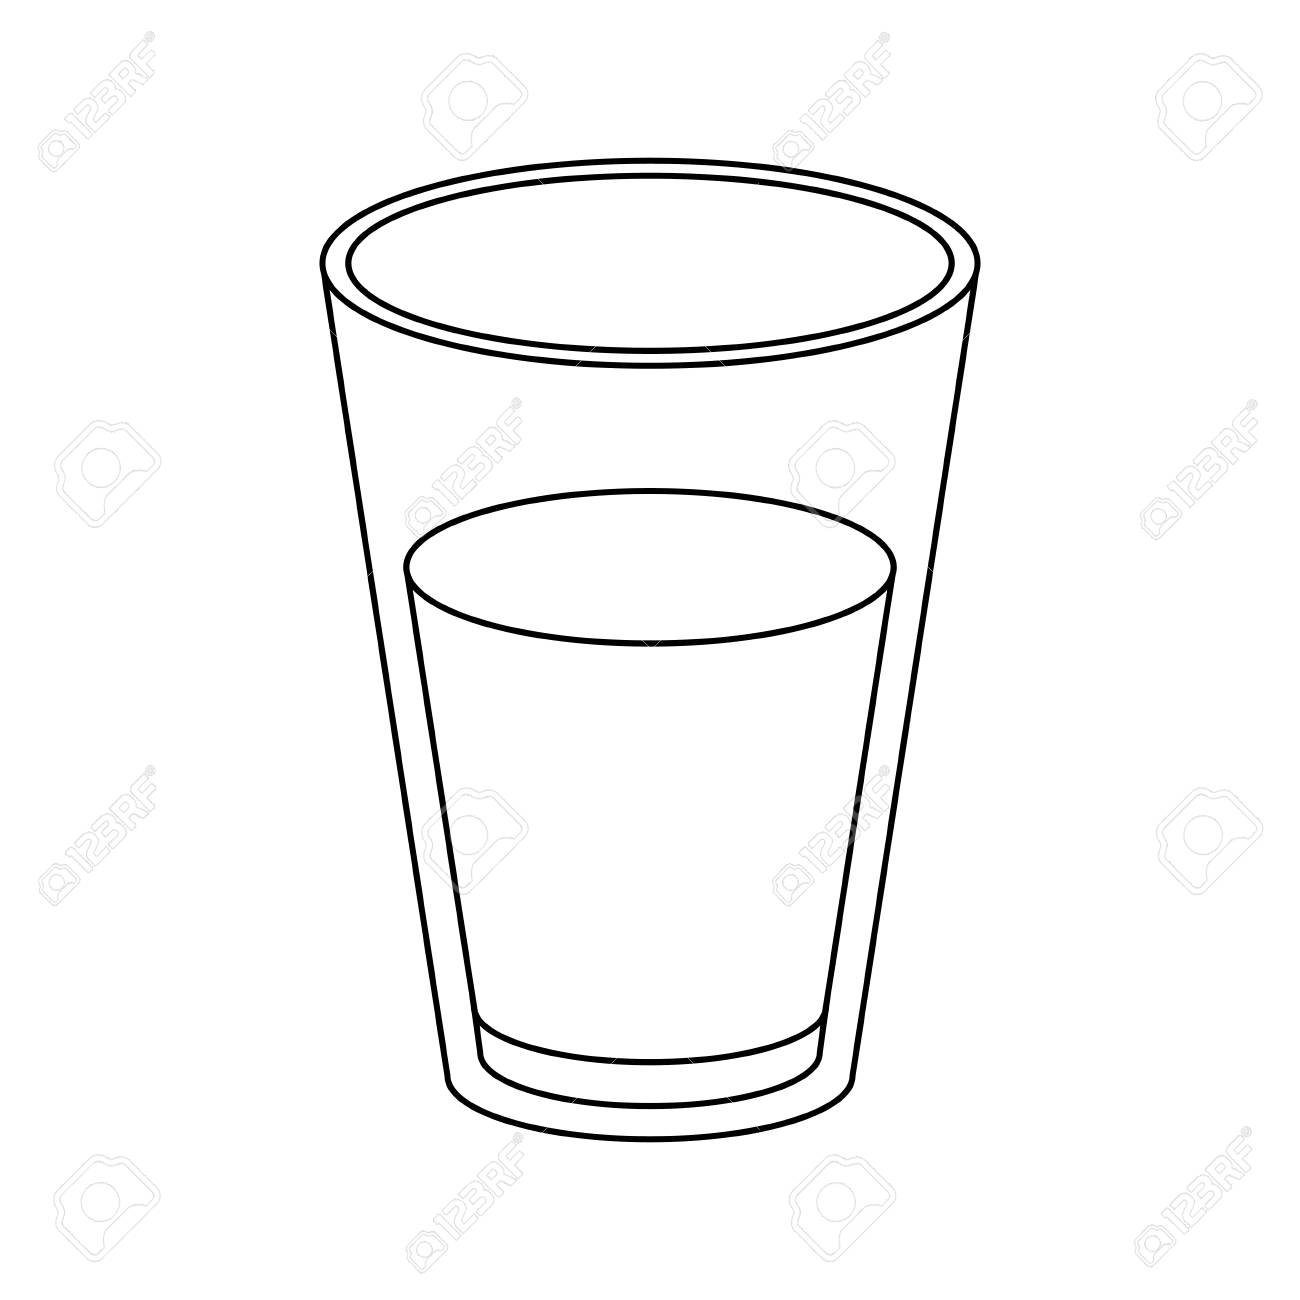 glass of milk sketch silhouette on white background vector